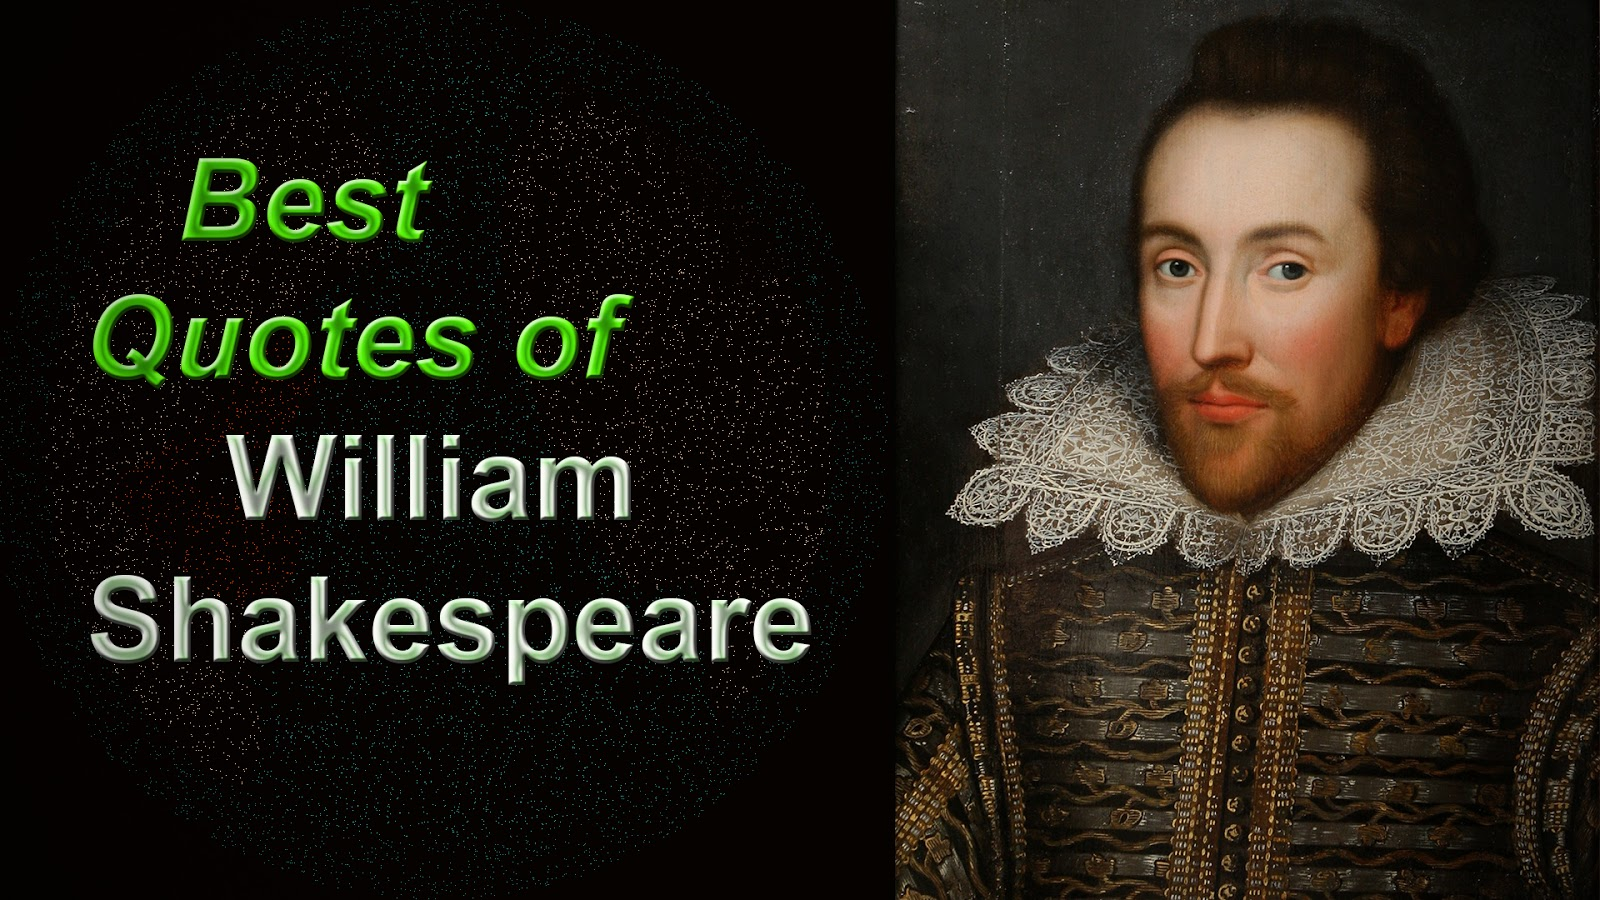 Best Quotes of William Shakespeare - Best Quotes Forever